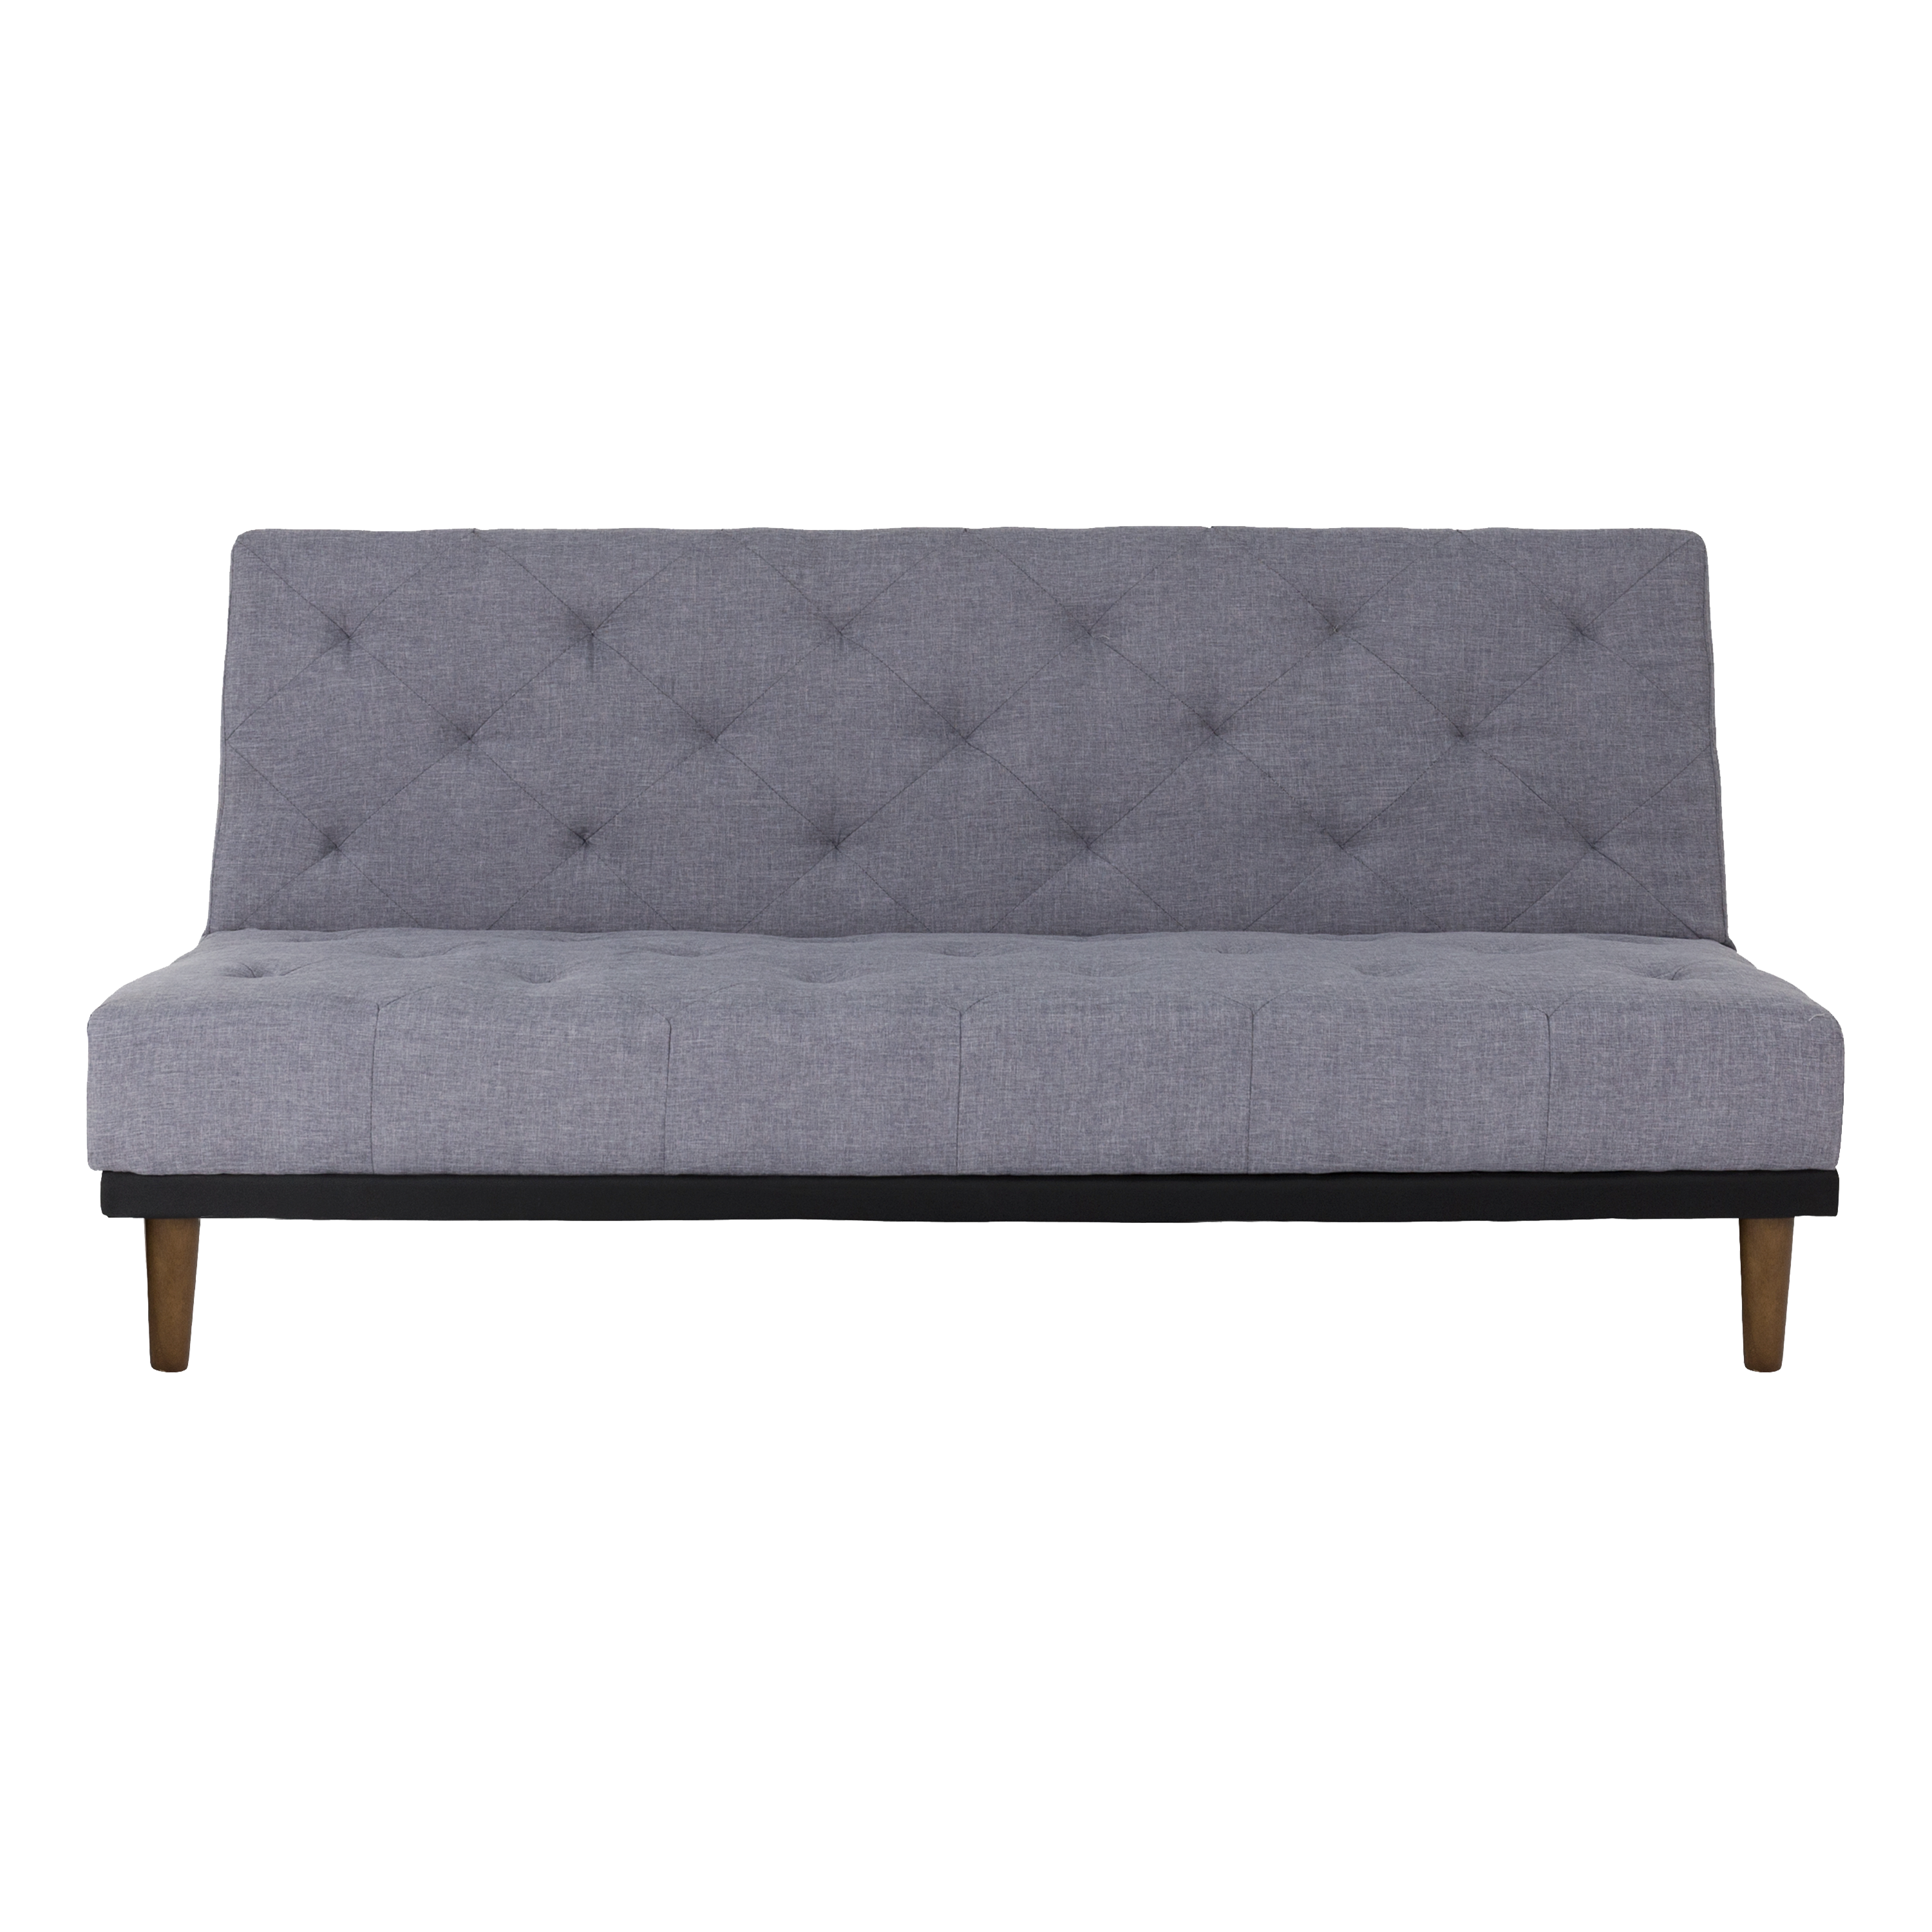 Remarkable Emily Sofa Bed Blue Products In 2019 Sofa Bed Blue Bralicious Painted Fabric Chair Ideas Braliciousco